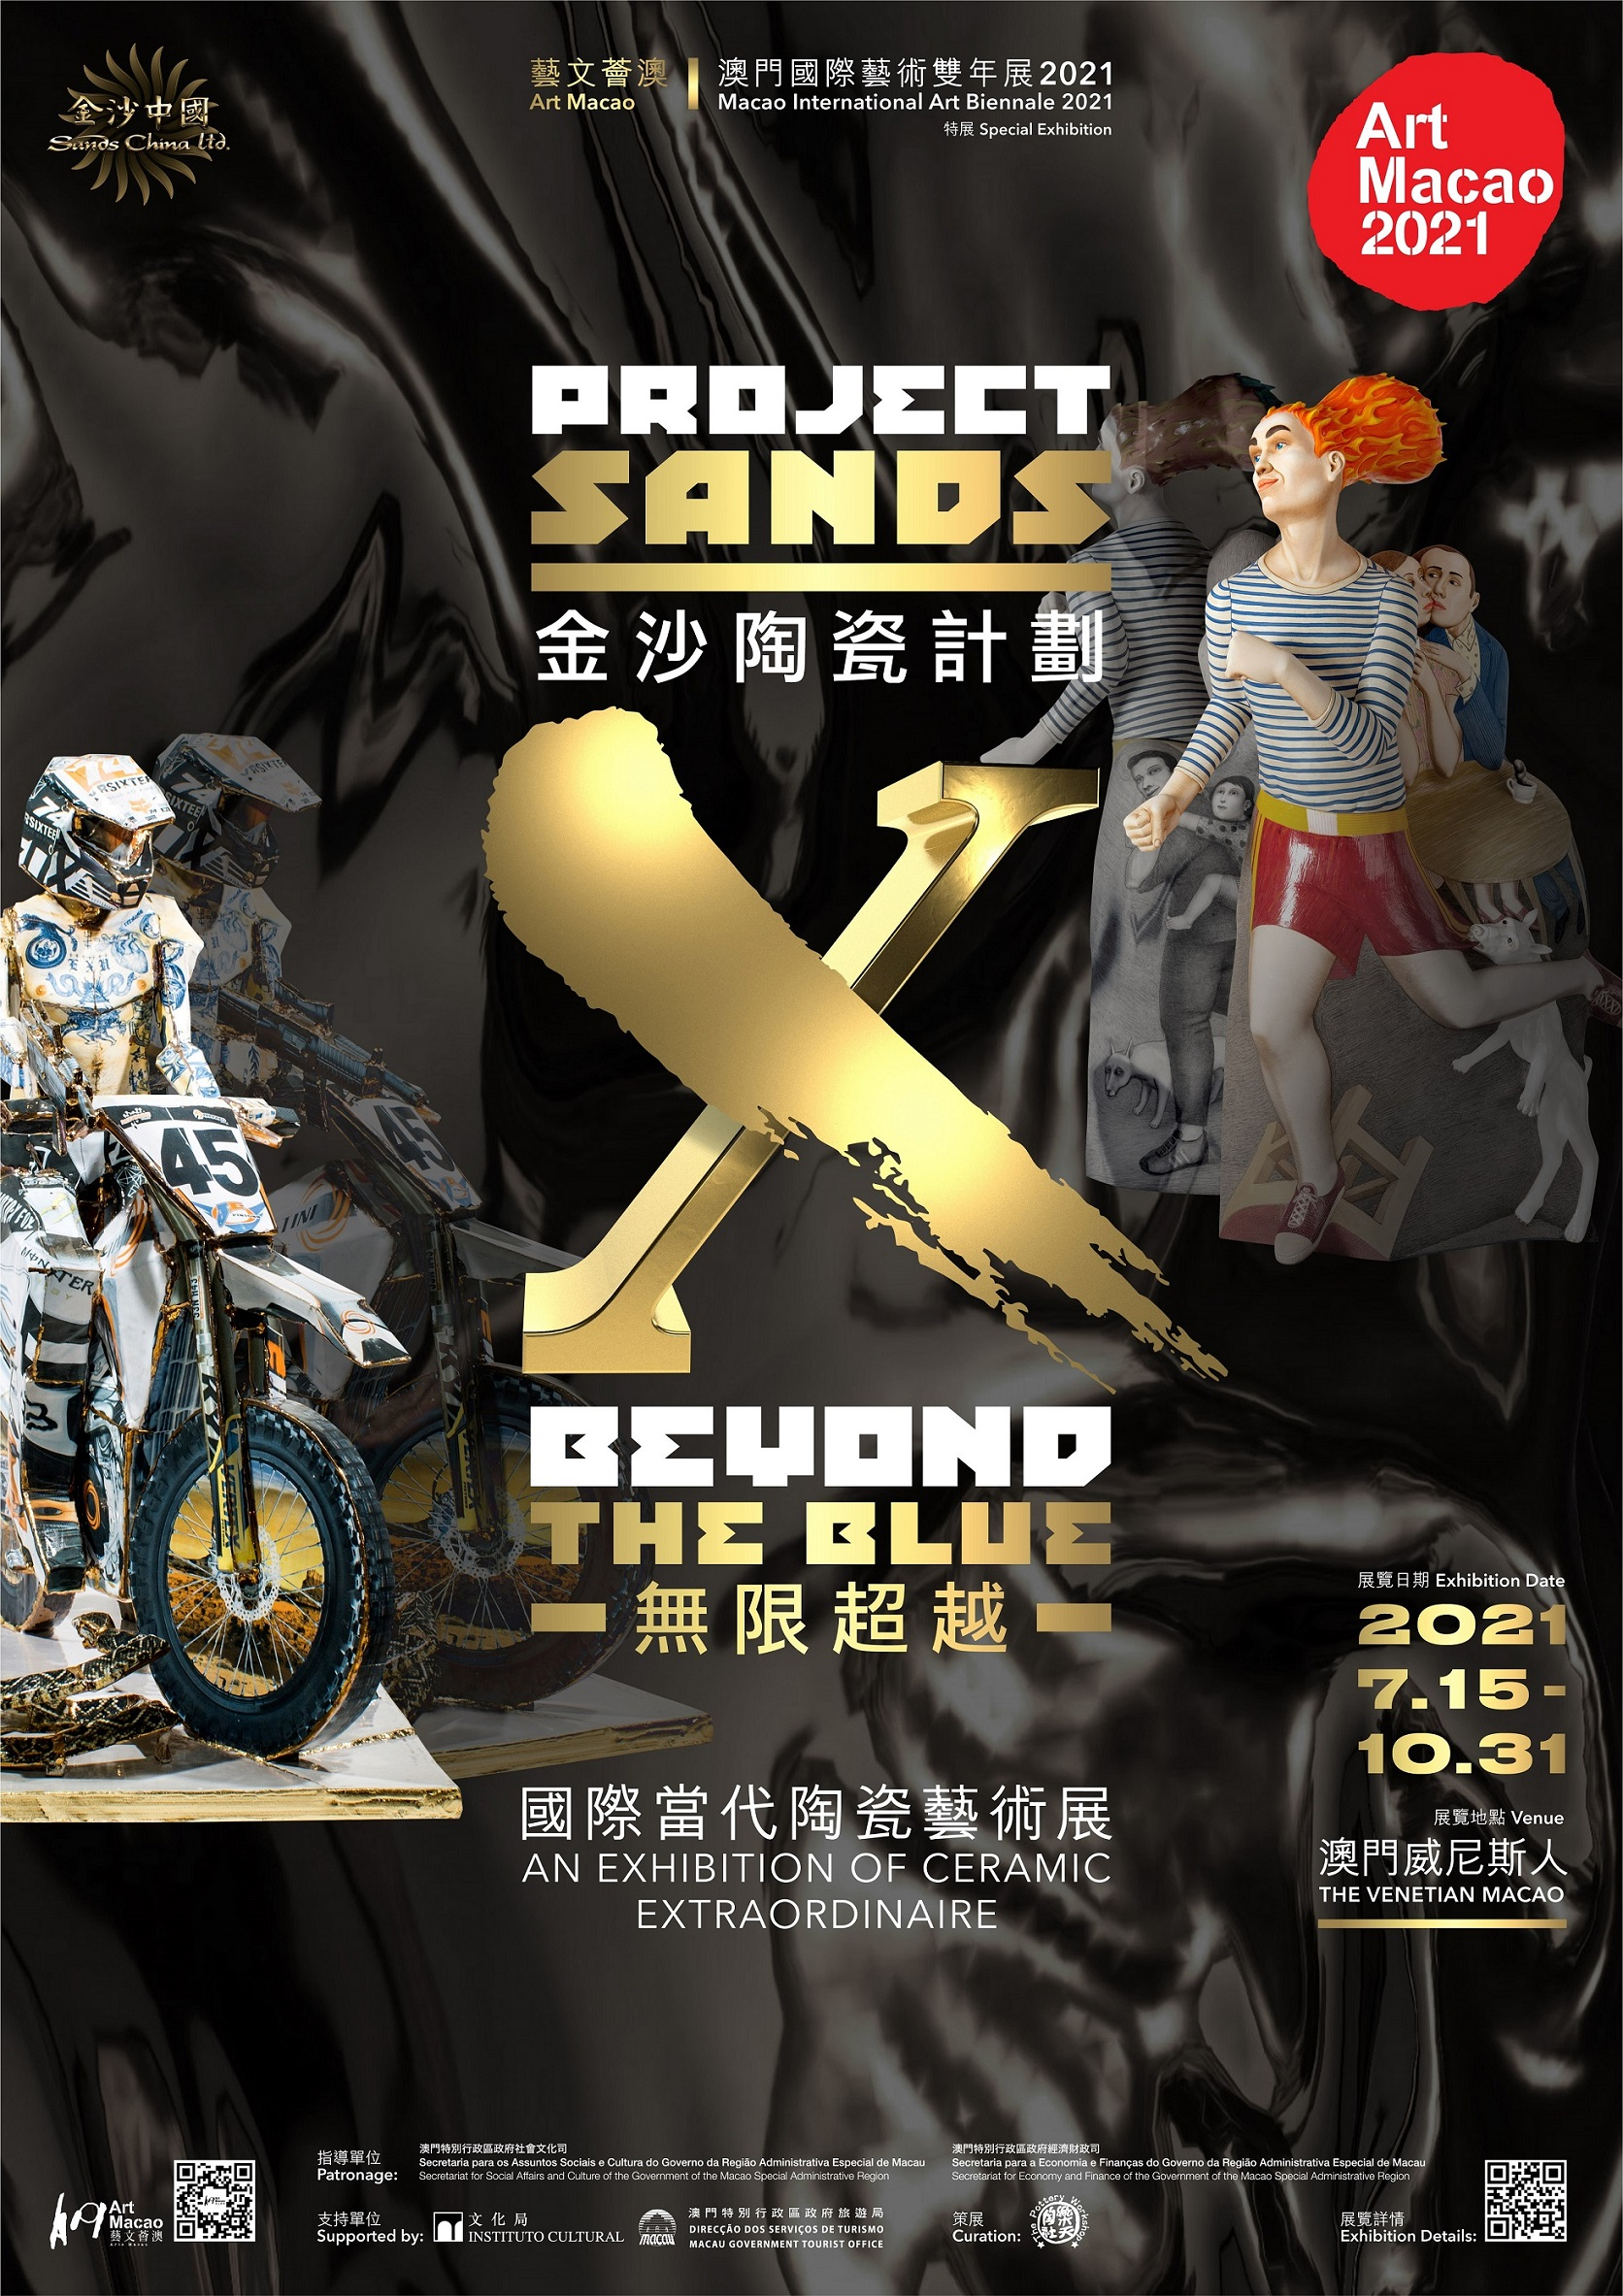 Project SandX beyond the blue Poster this weekend Macau